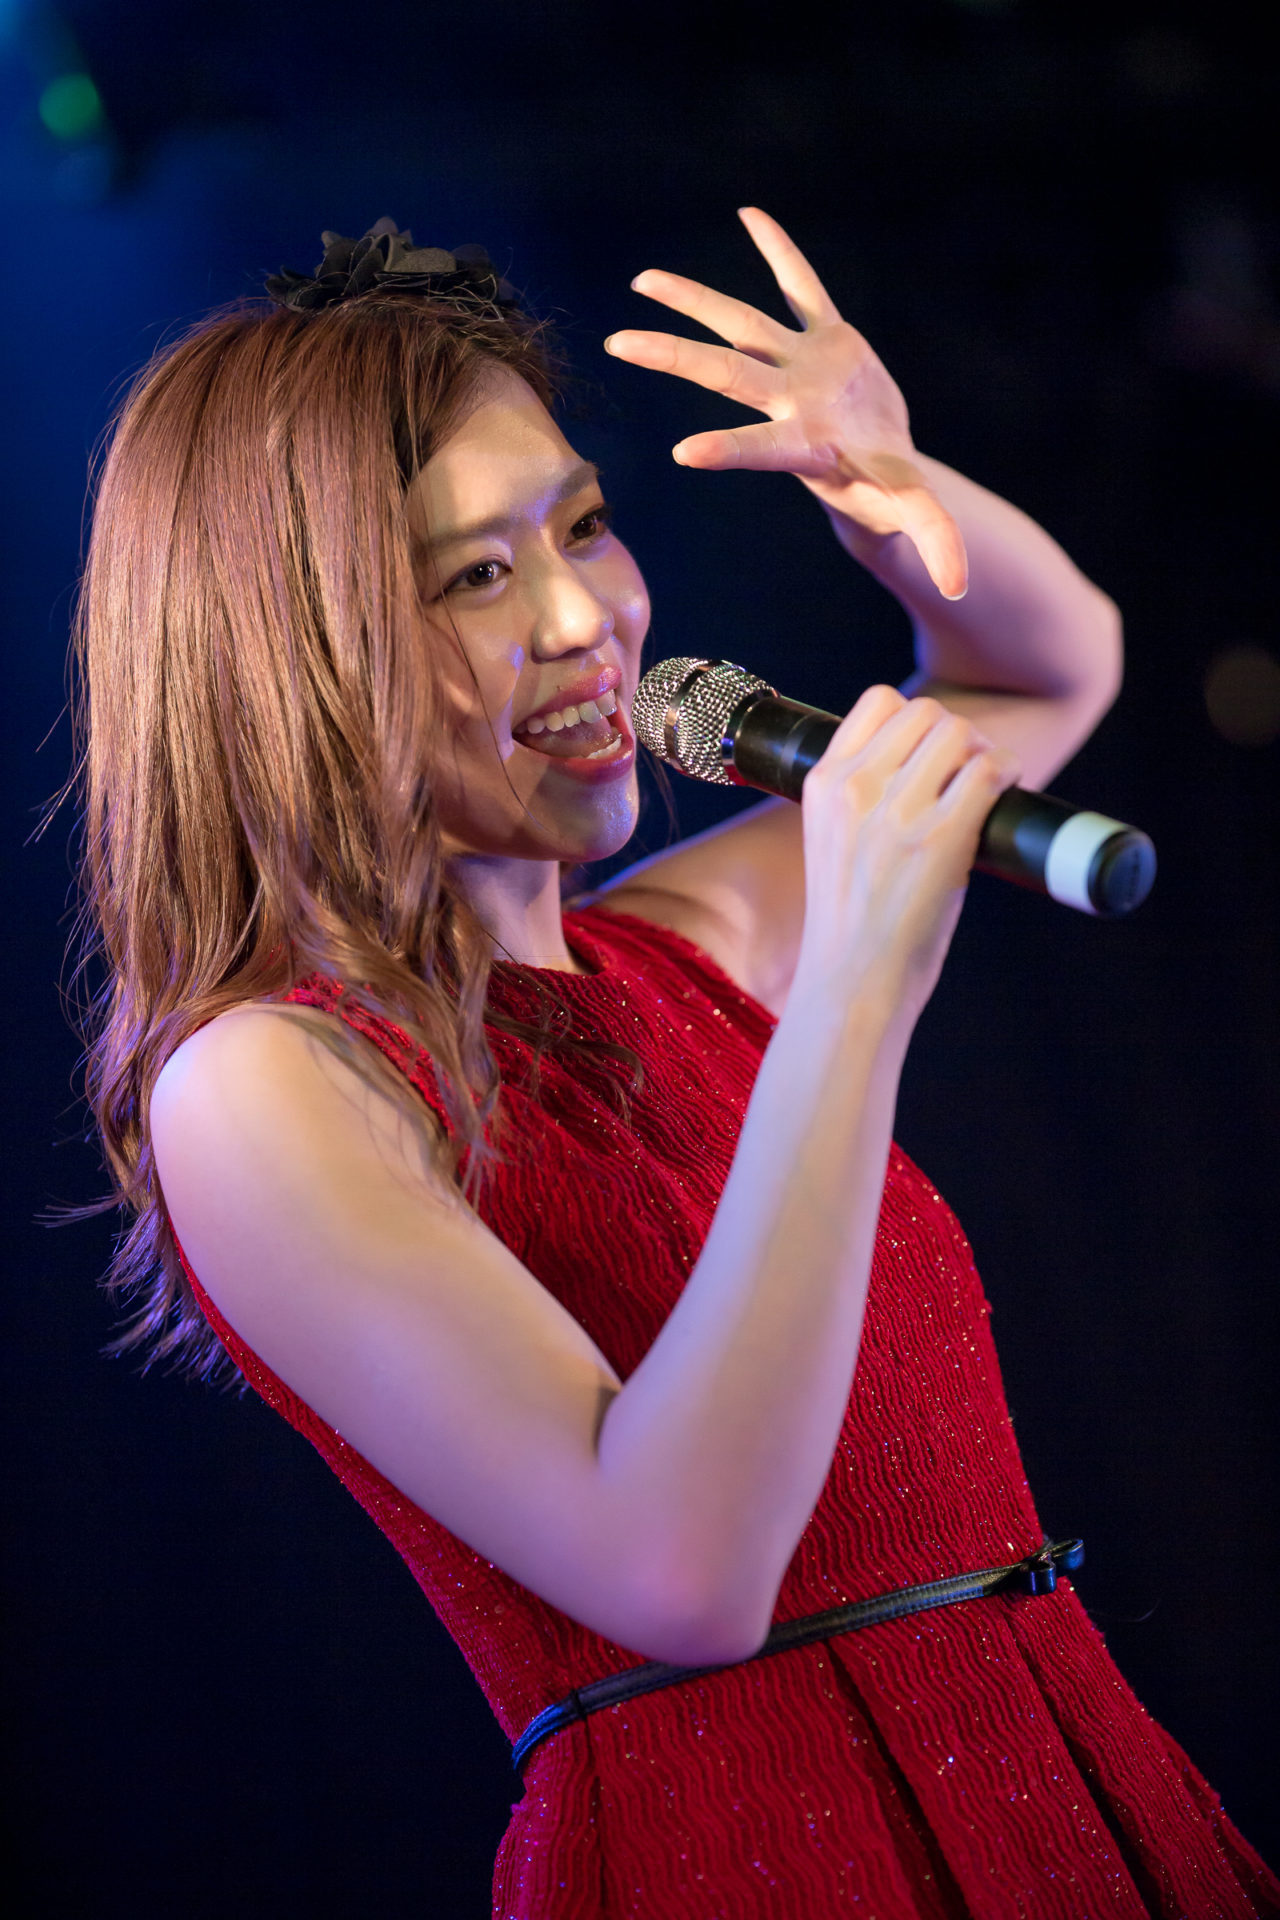 WHY@DOLL 青木千春   WHY@DOLL ワンマンライブツアー2018 ~Show Me Your Smile -第2部-